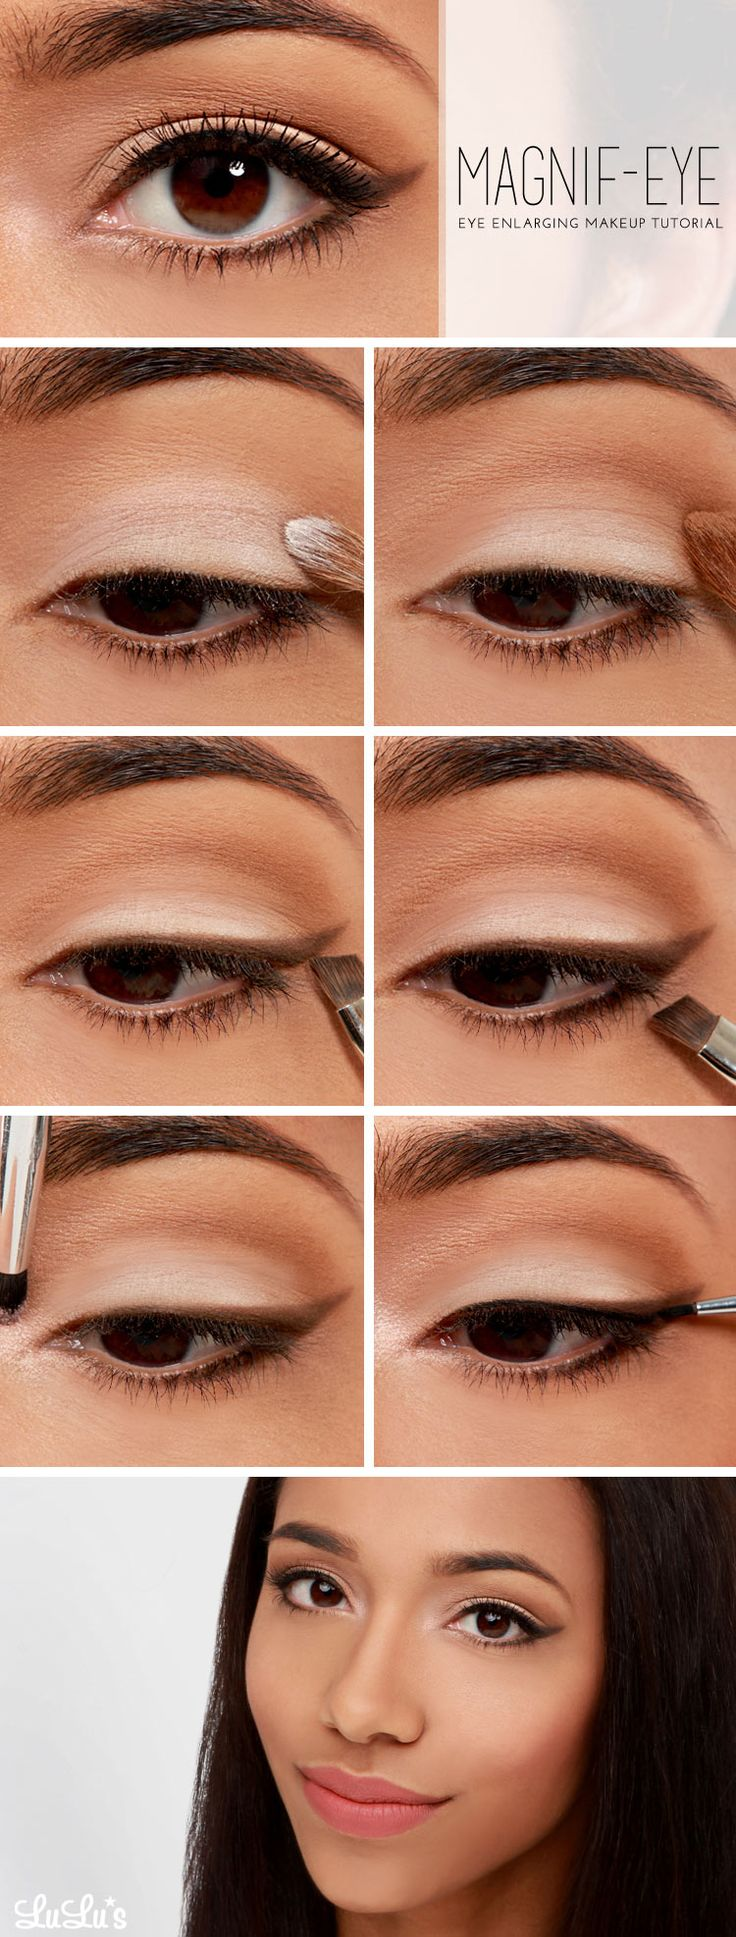 LuLu*s How-To: Eye Enlarging Makeup Tutorial - Lulus.com Fashion Blog